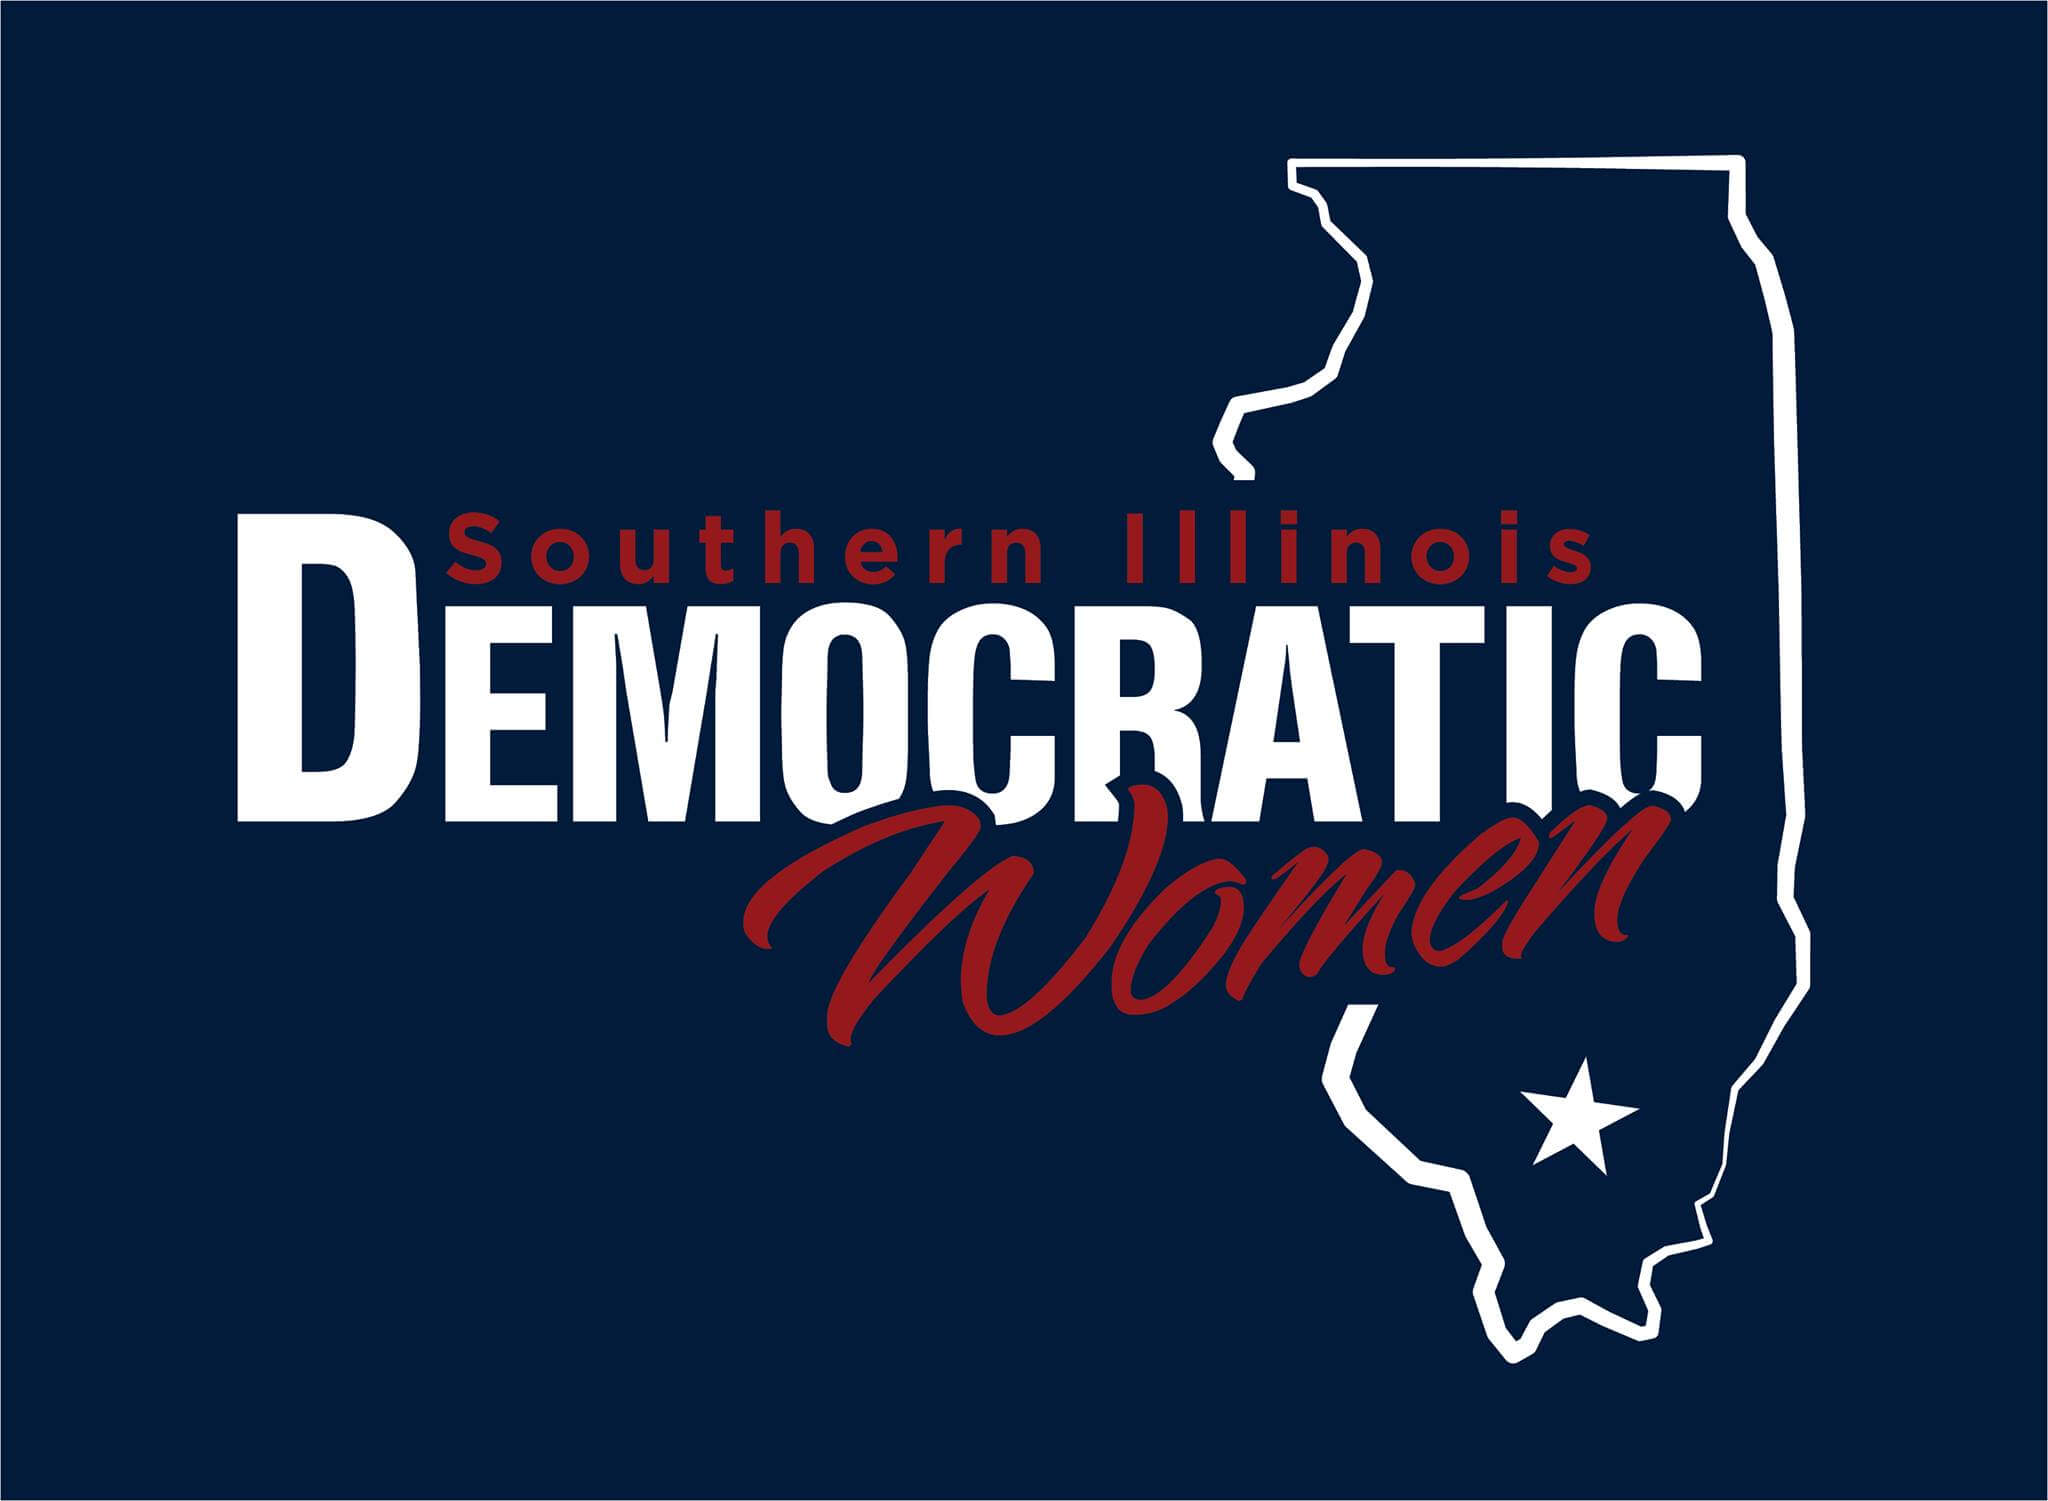 Grassroots Action: Southern Illinois Democratic Women